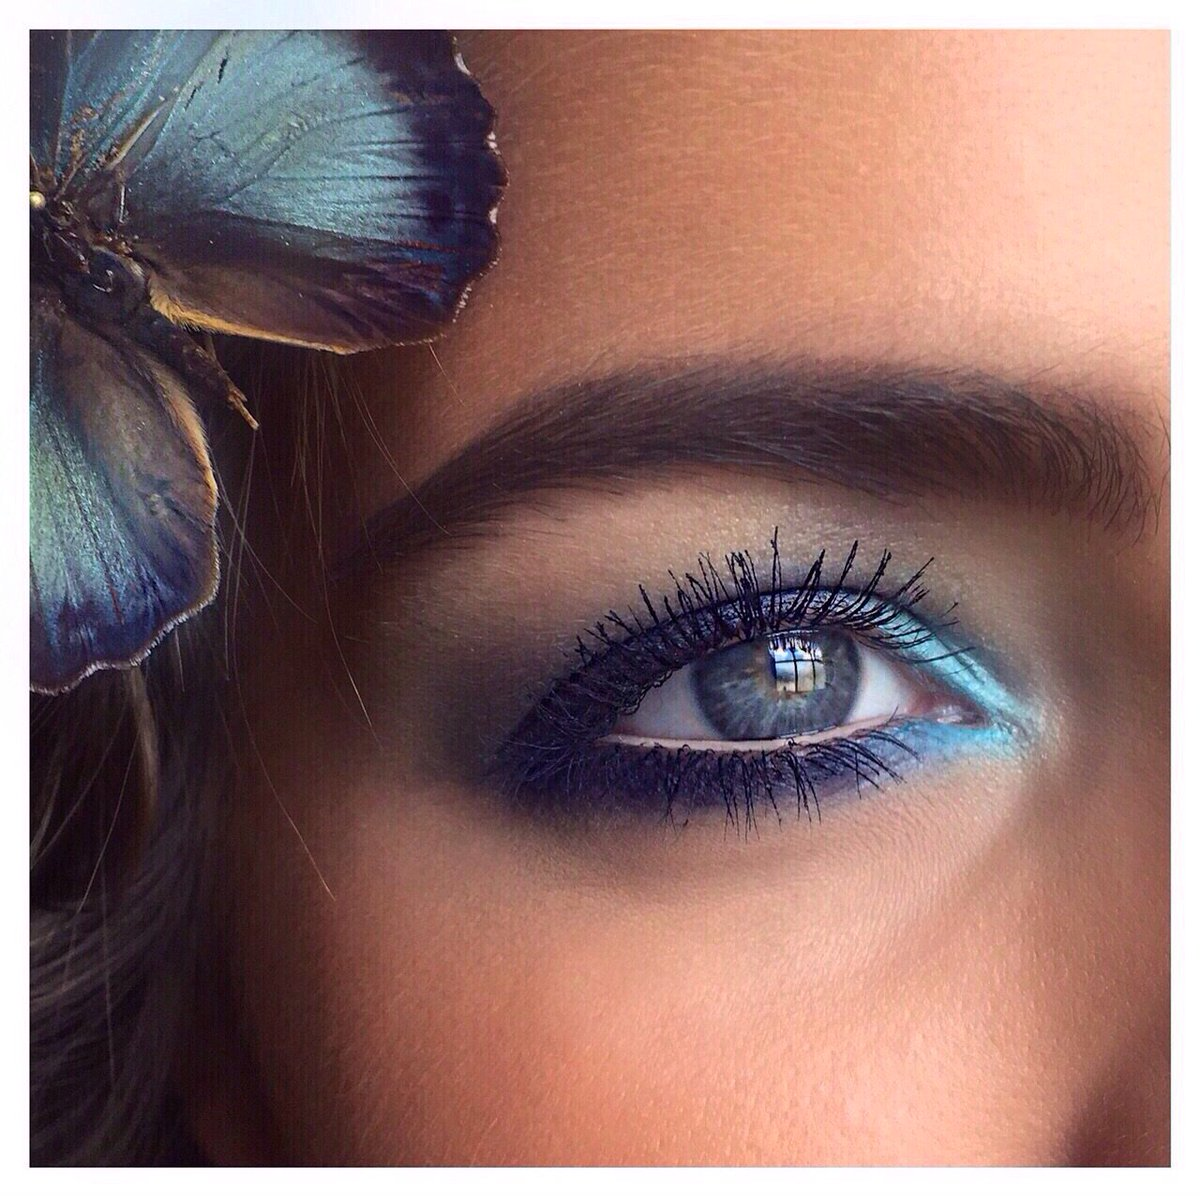 Samoa Cosmetics On Twitter Beautiful Aqua Colored Makeup For Irresistible Blue Eyes Green Eyes Can Do The Same With Green Eyeshadow Samoa Https T Co Squqf39sc0